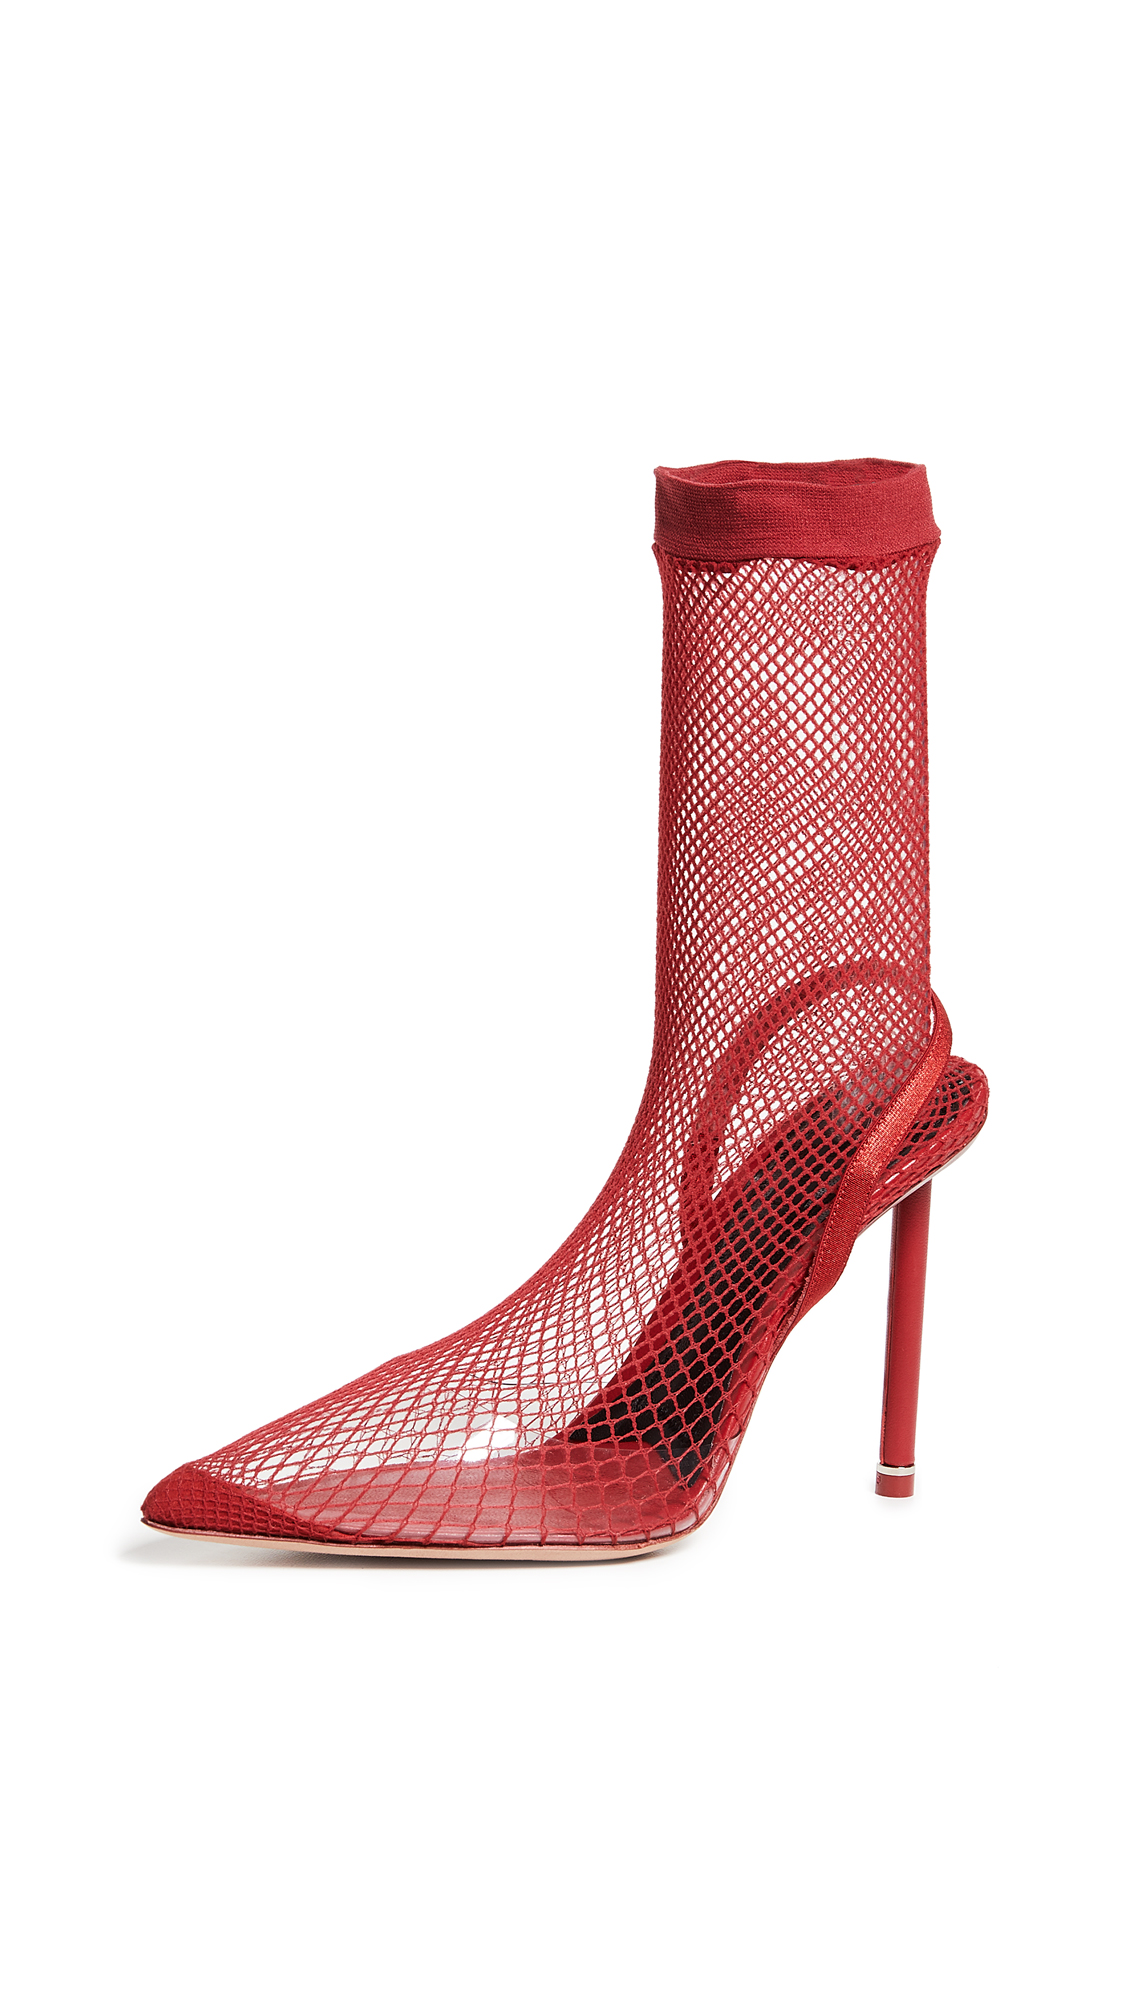 Alexander Wang Caden High Heel Booties - Red